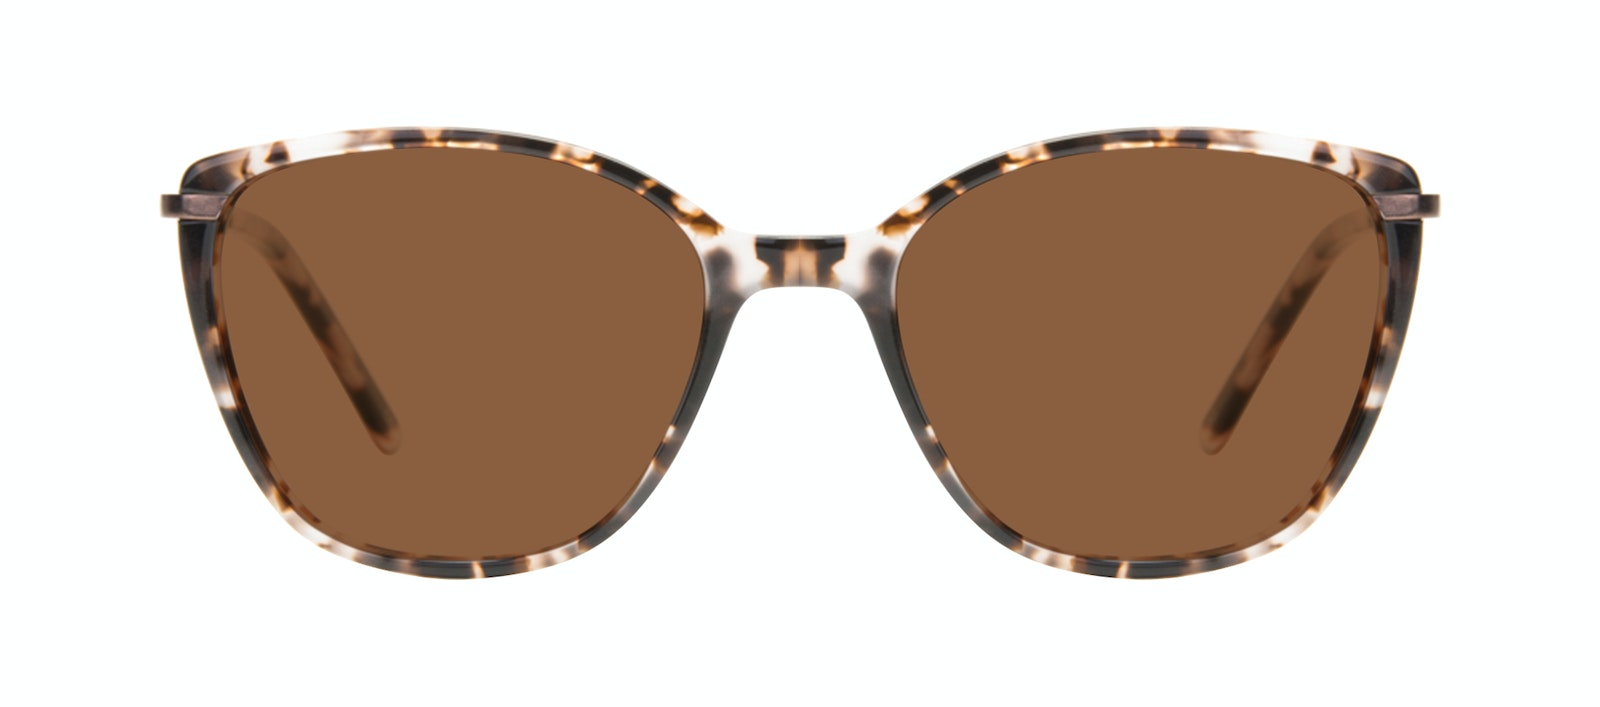 Affordable Fashion Glasses Rectangle Square Sunglasses Women Illusion Sand Front